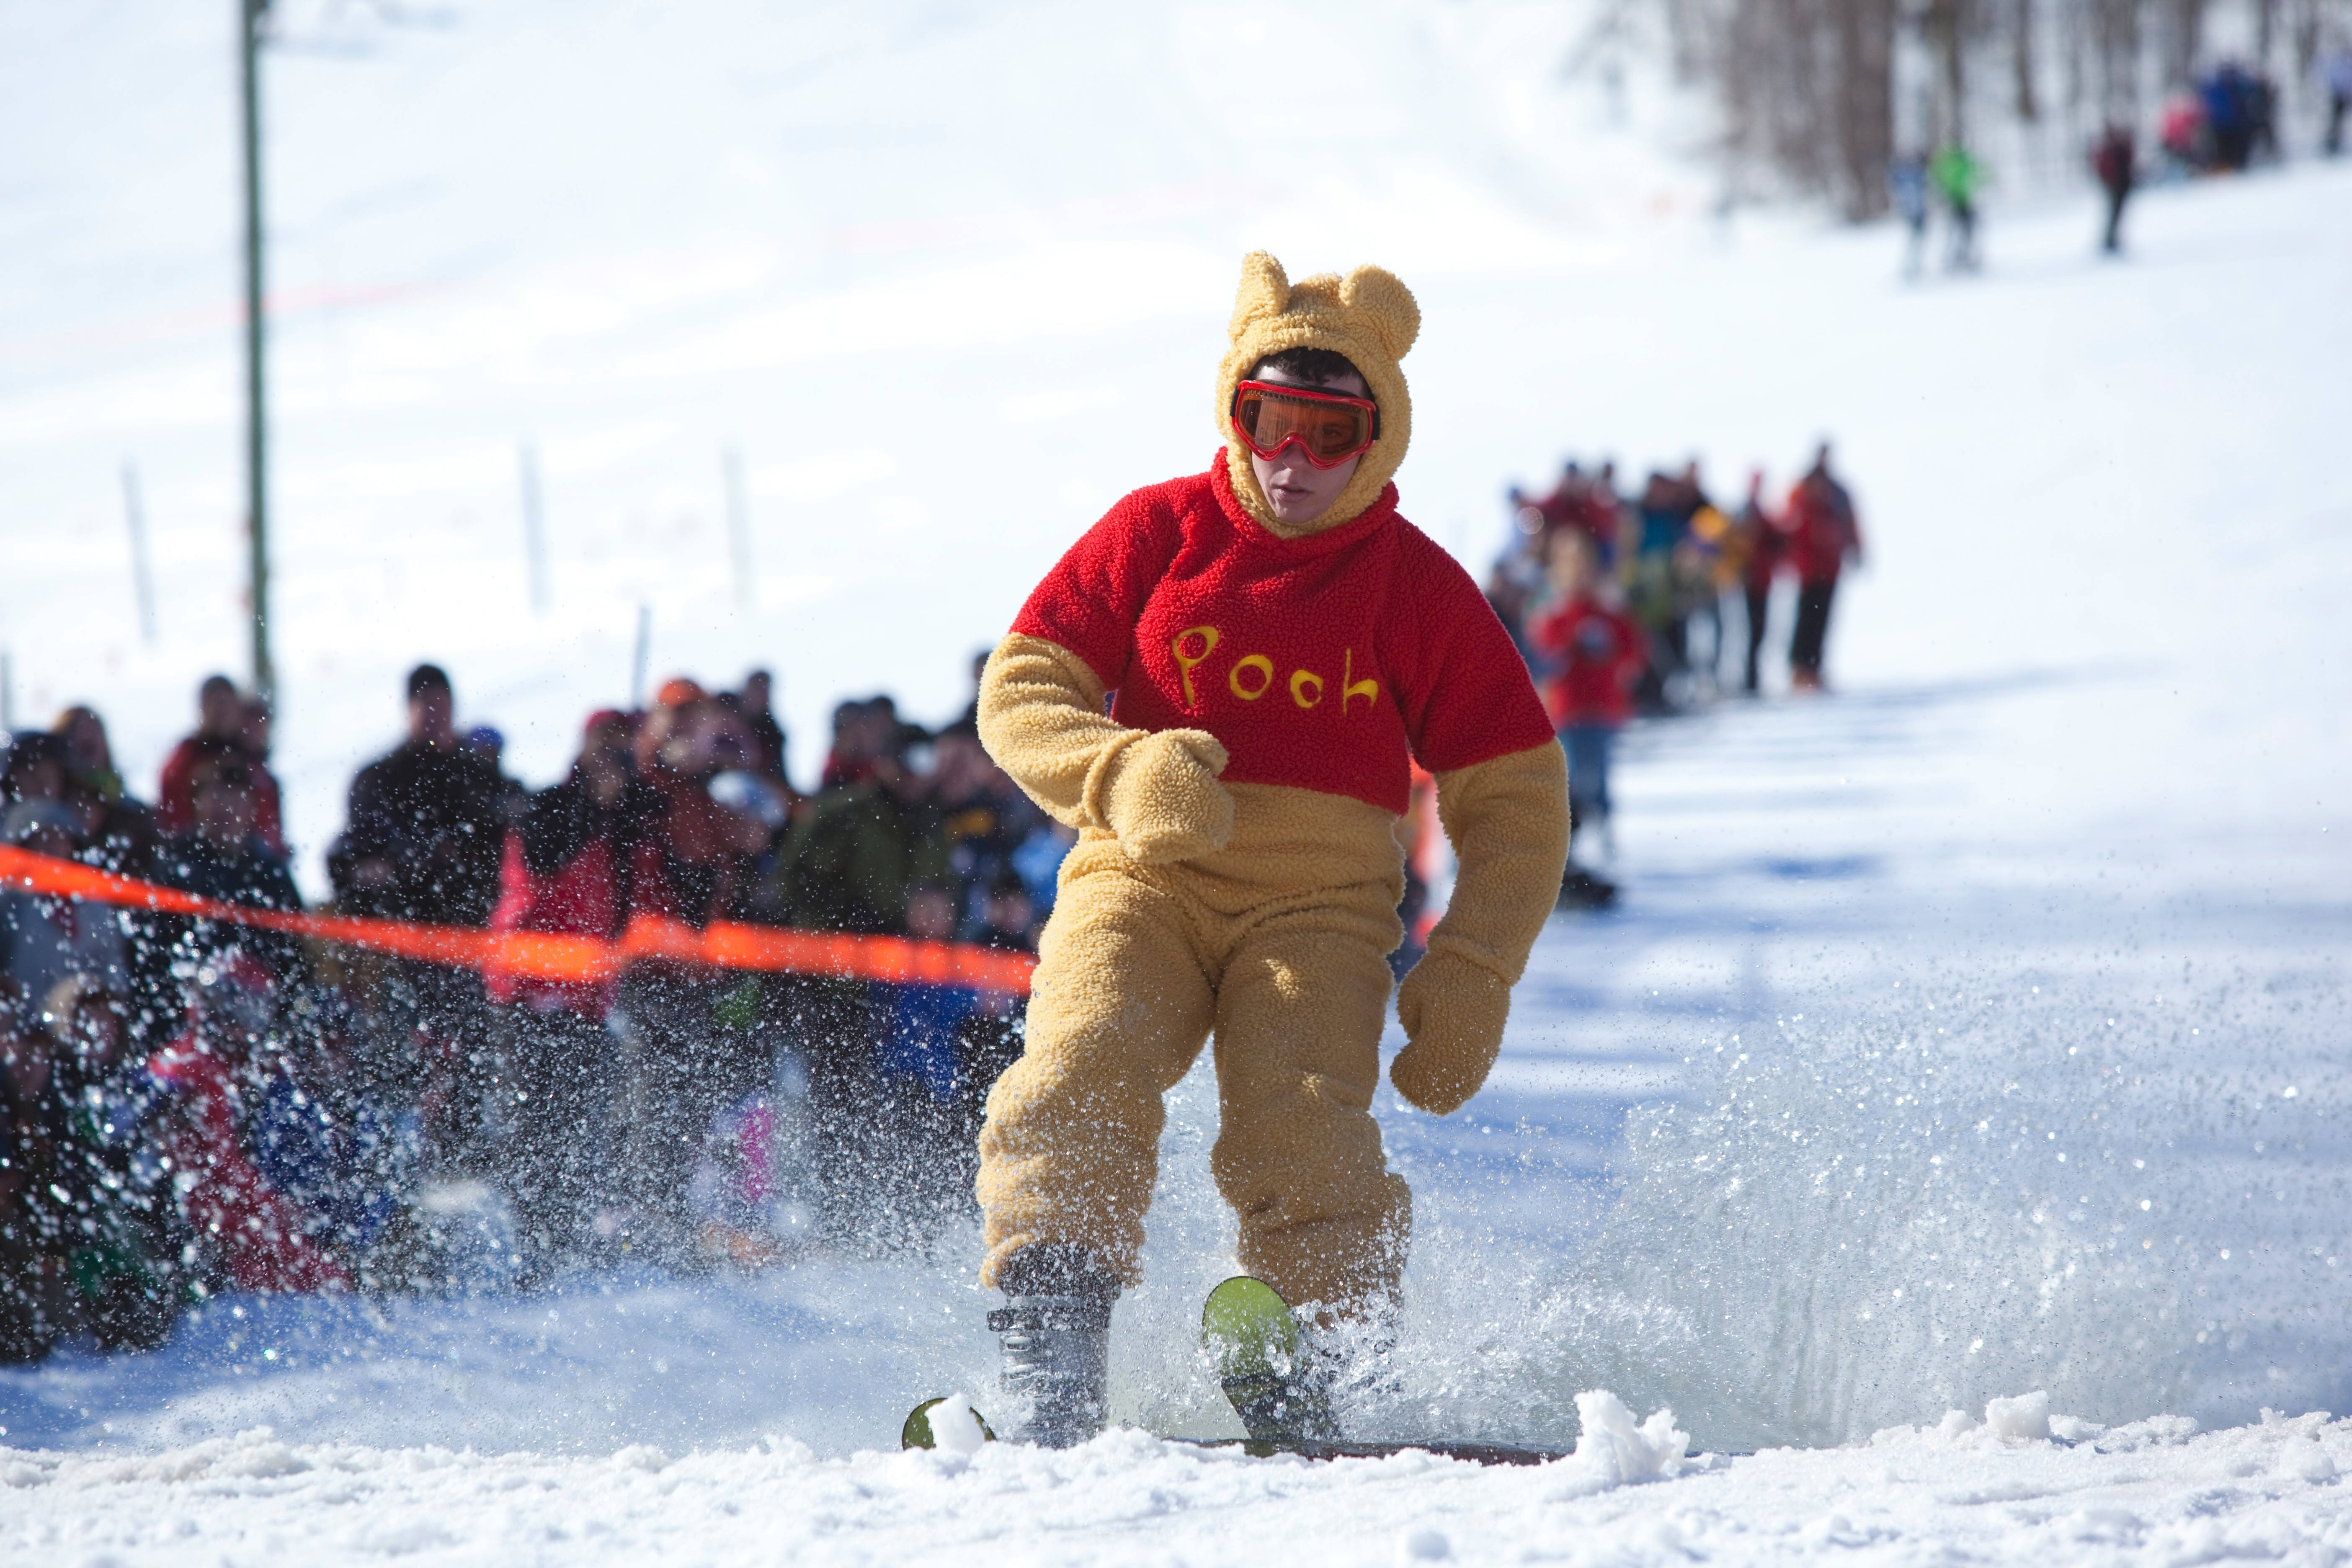 Michigan's Shanty Creek Resort's most popular event, the very silly Monster Energy Slush Cup Weekend, will be held March 1.